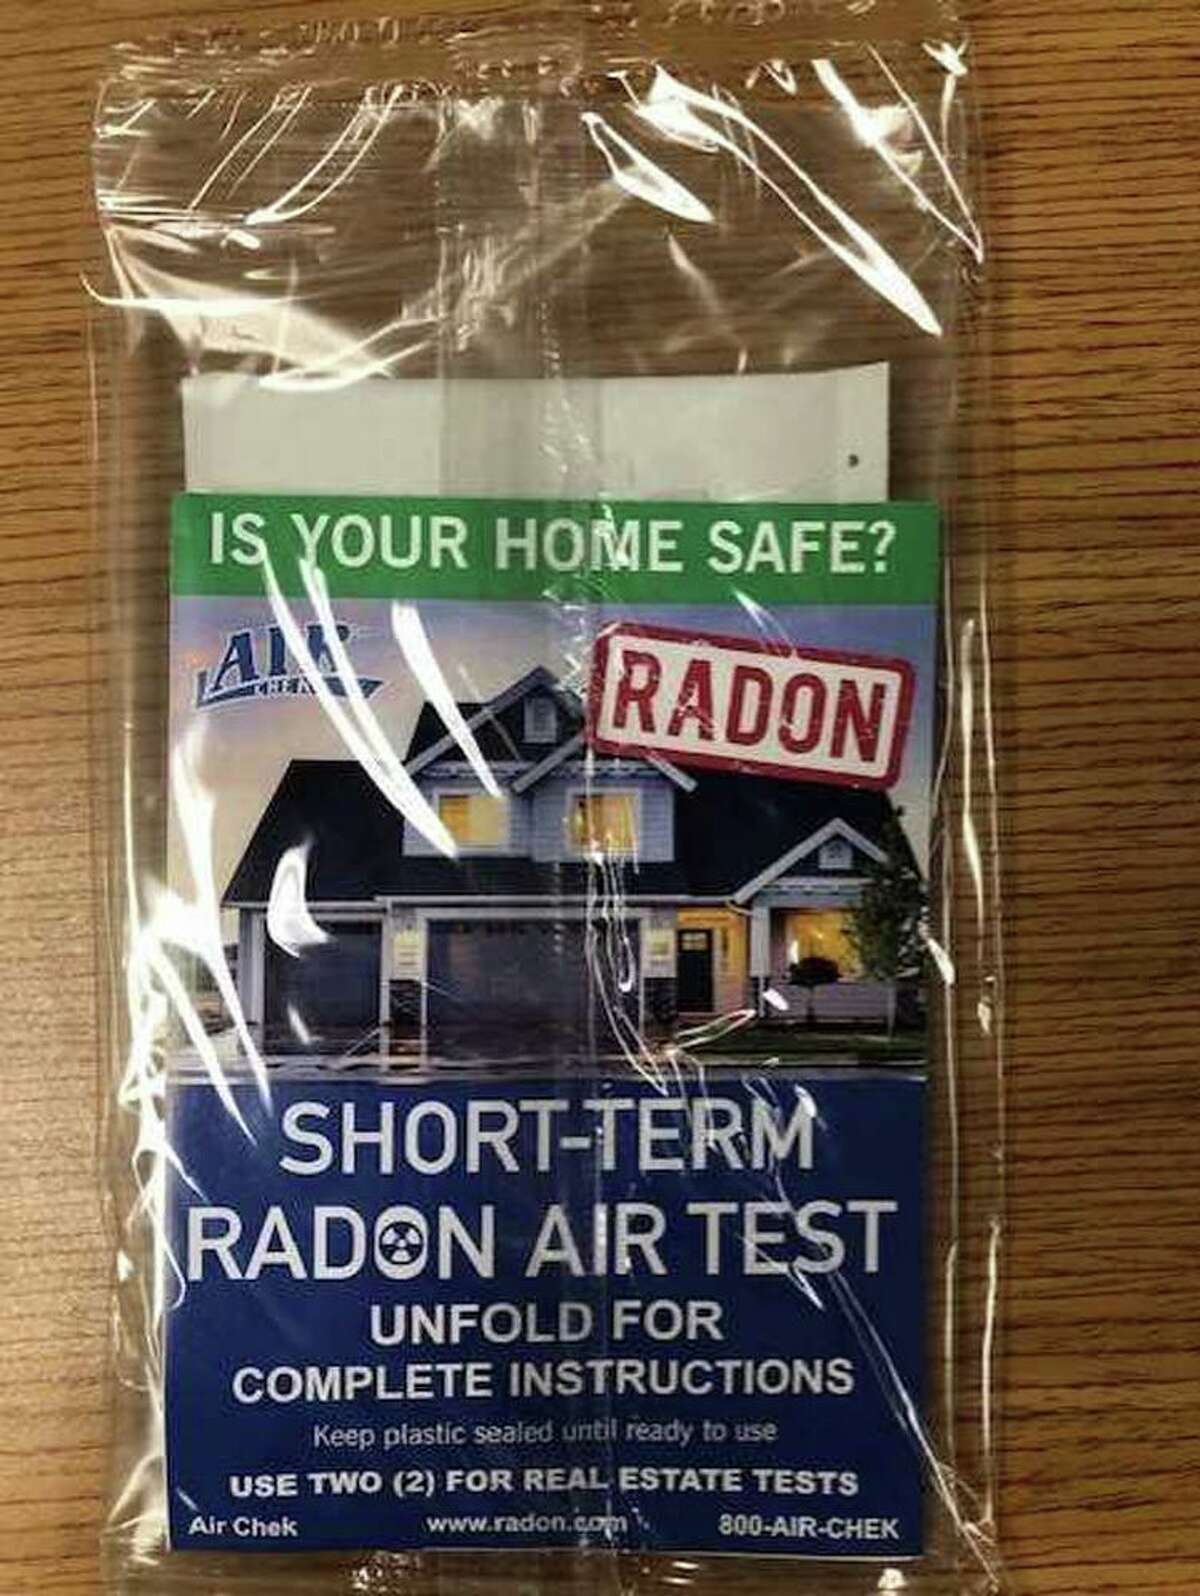 Here is a radon test kit to test for the gas in the home. The Darien Health Department is advising resident of the town to test their homes for the gas, especially now that many families are spending more time at home due to the disease, COVID-19.